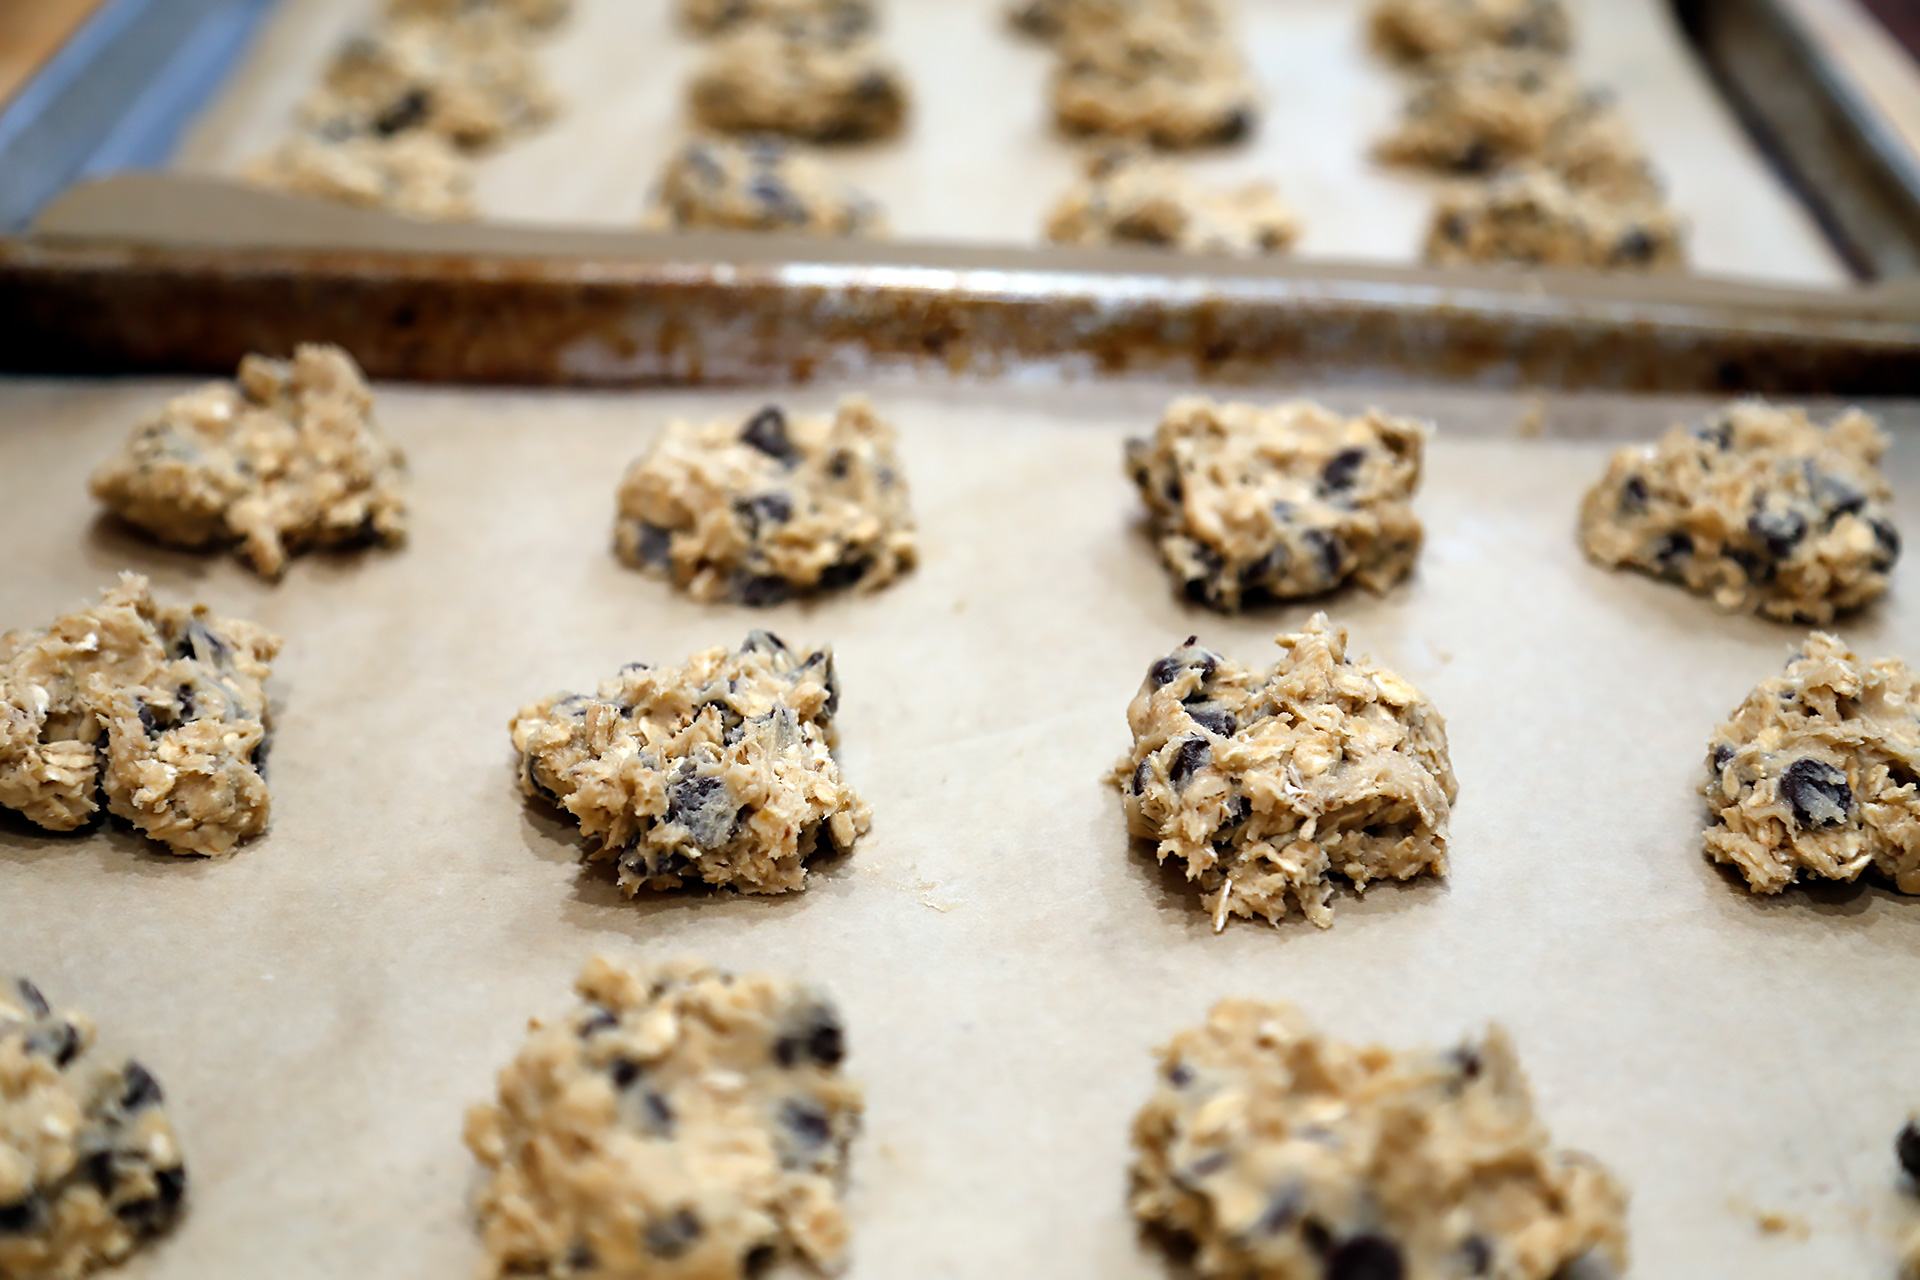 Drop rounded tablespoonfuls of the dough onto the prepared baking sheets, spacing them about an inch apart.